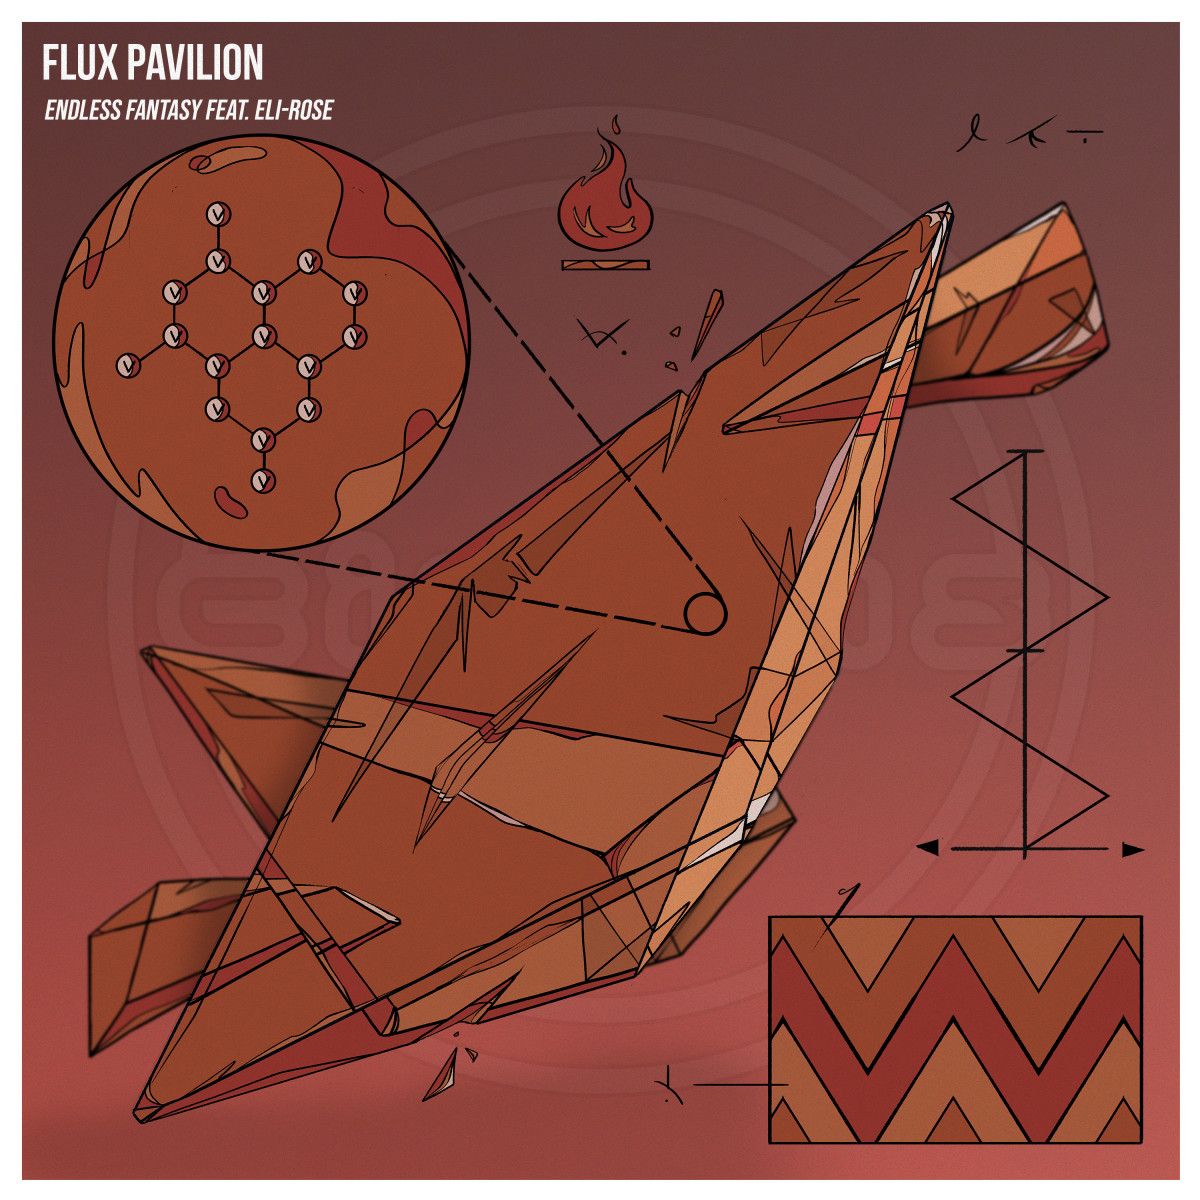 Flux Pavilion - Endless Fantasy (feat. Eli-rose) - ALBUM ARTWORK